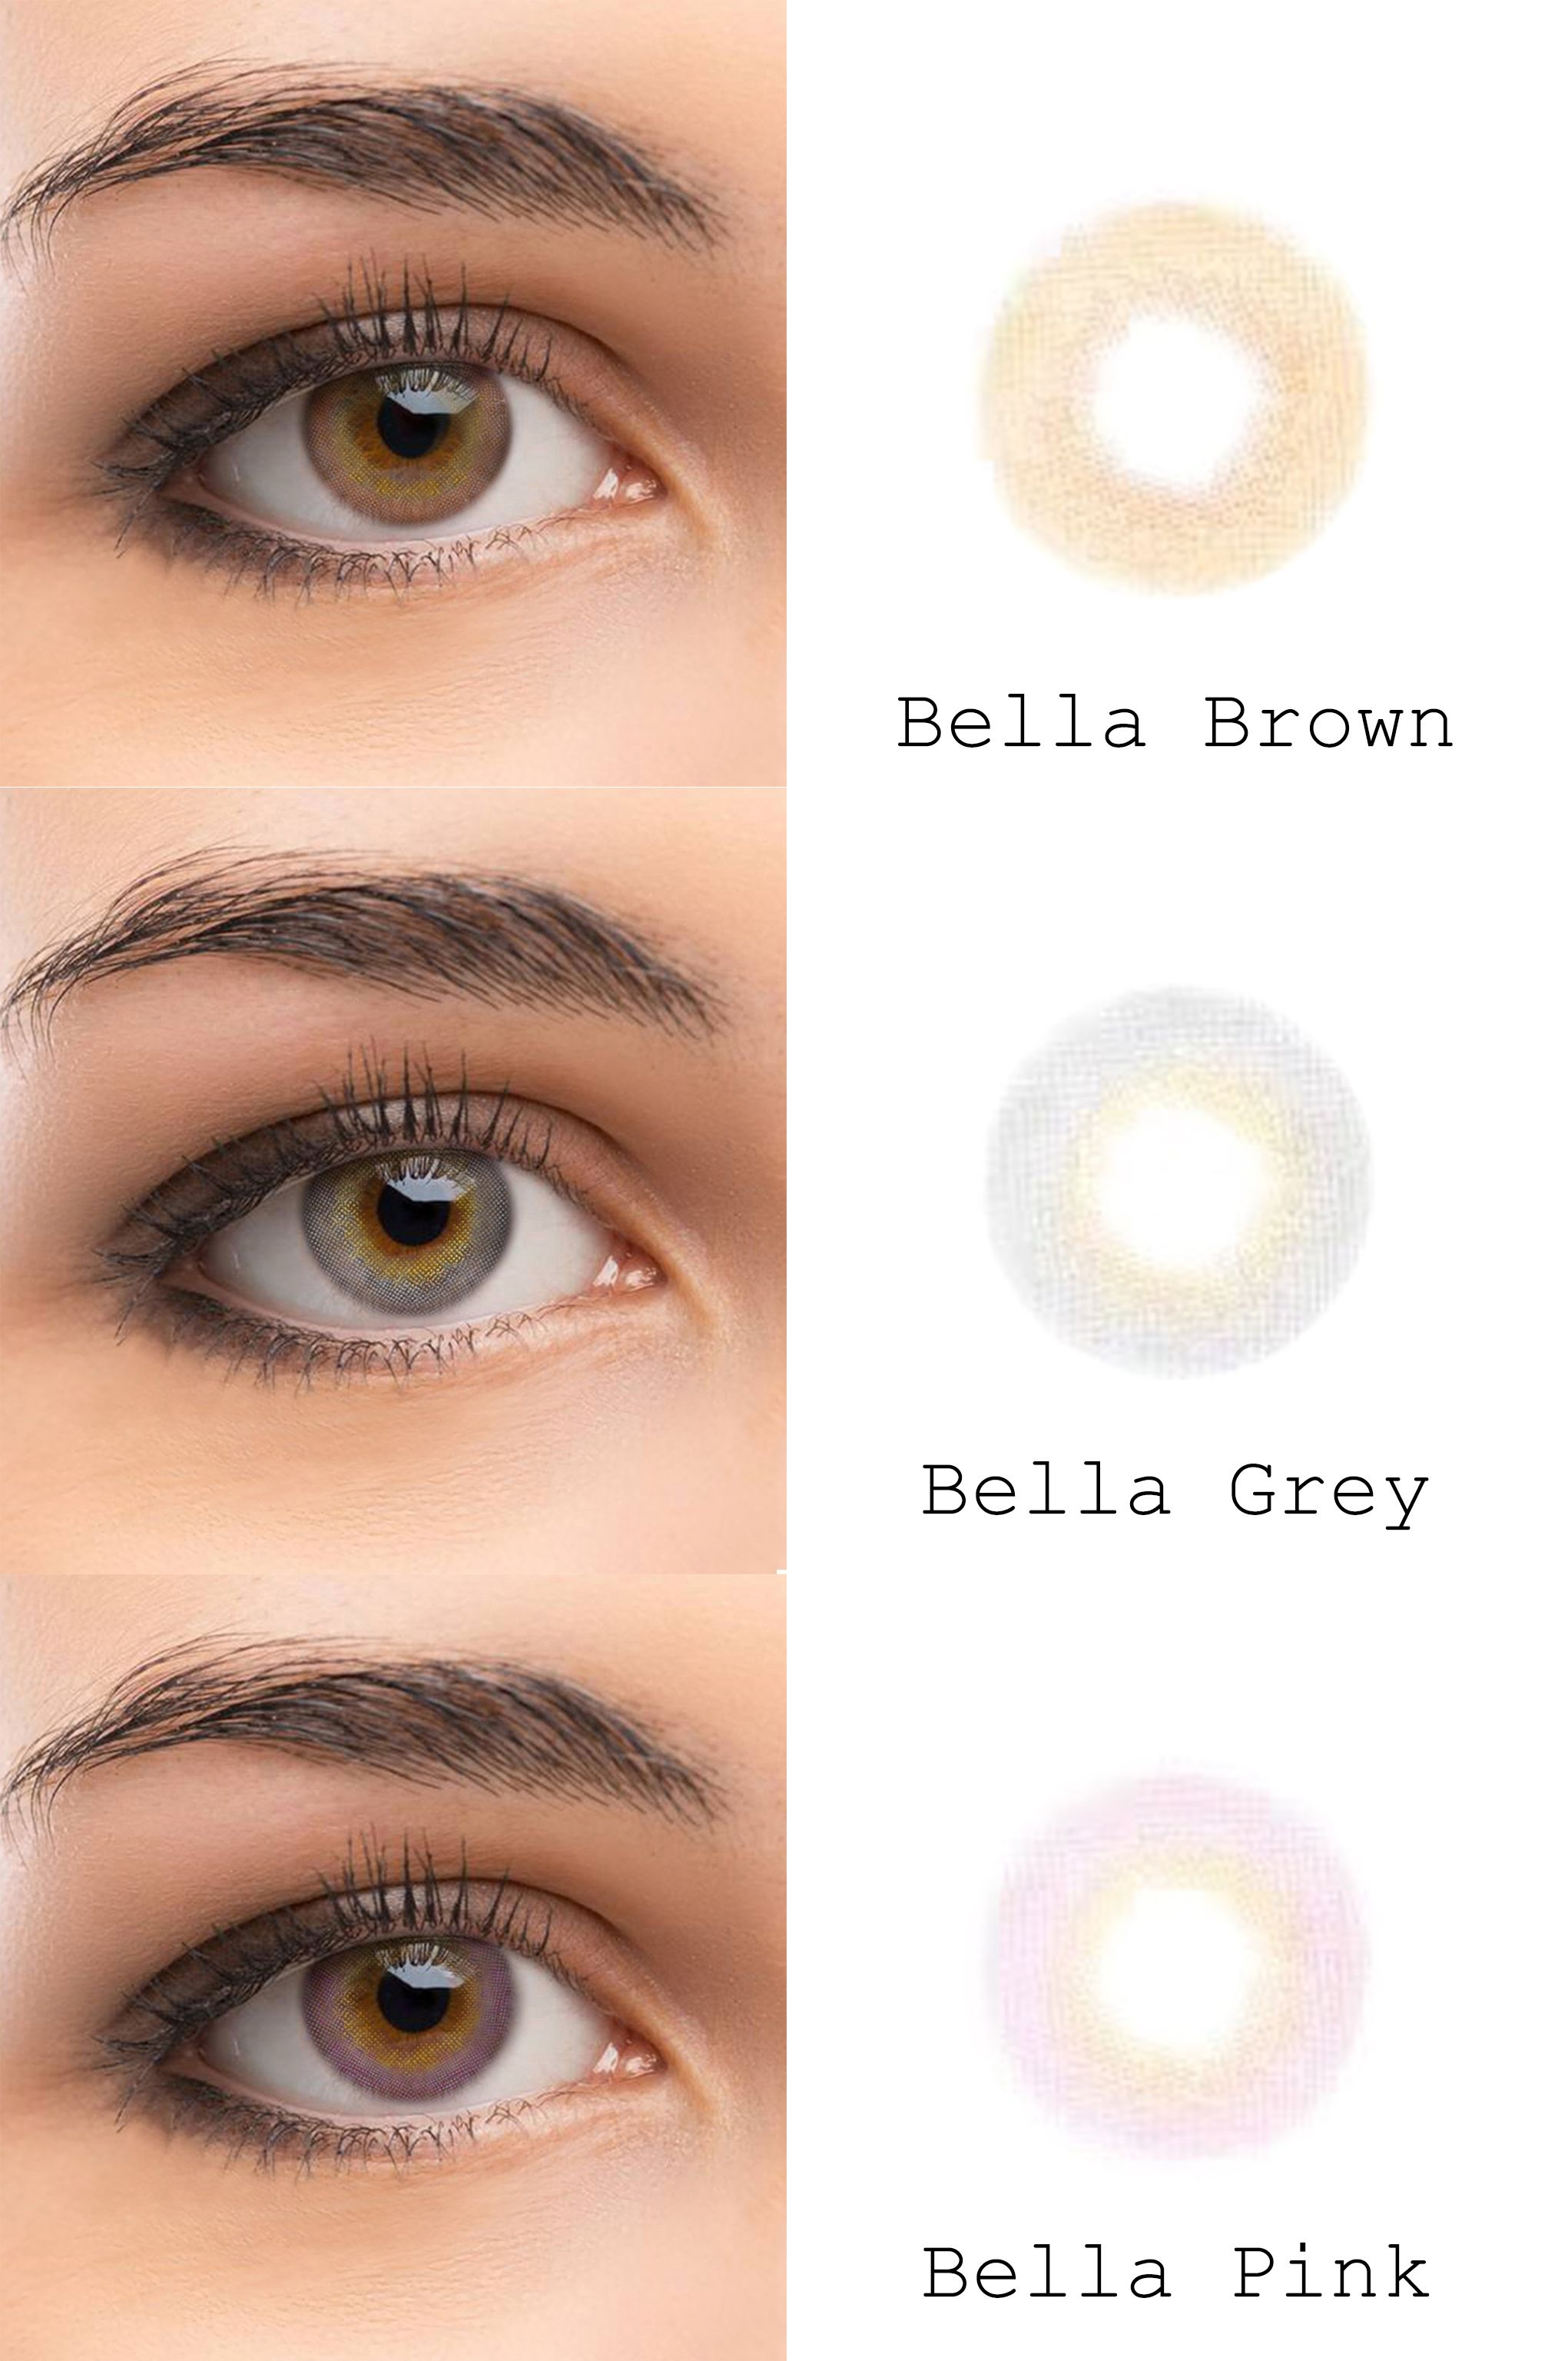 e4251177538 microeyelenses.com - Colored contact lenses online shop. Bella series   Gray